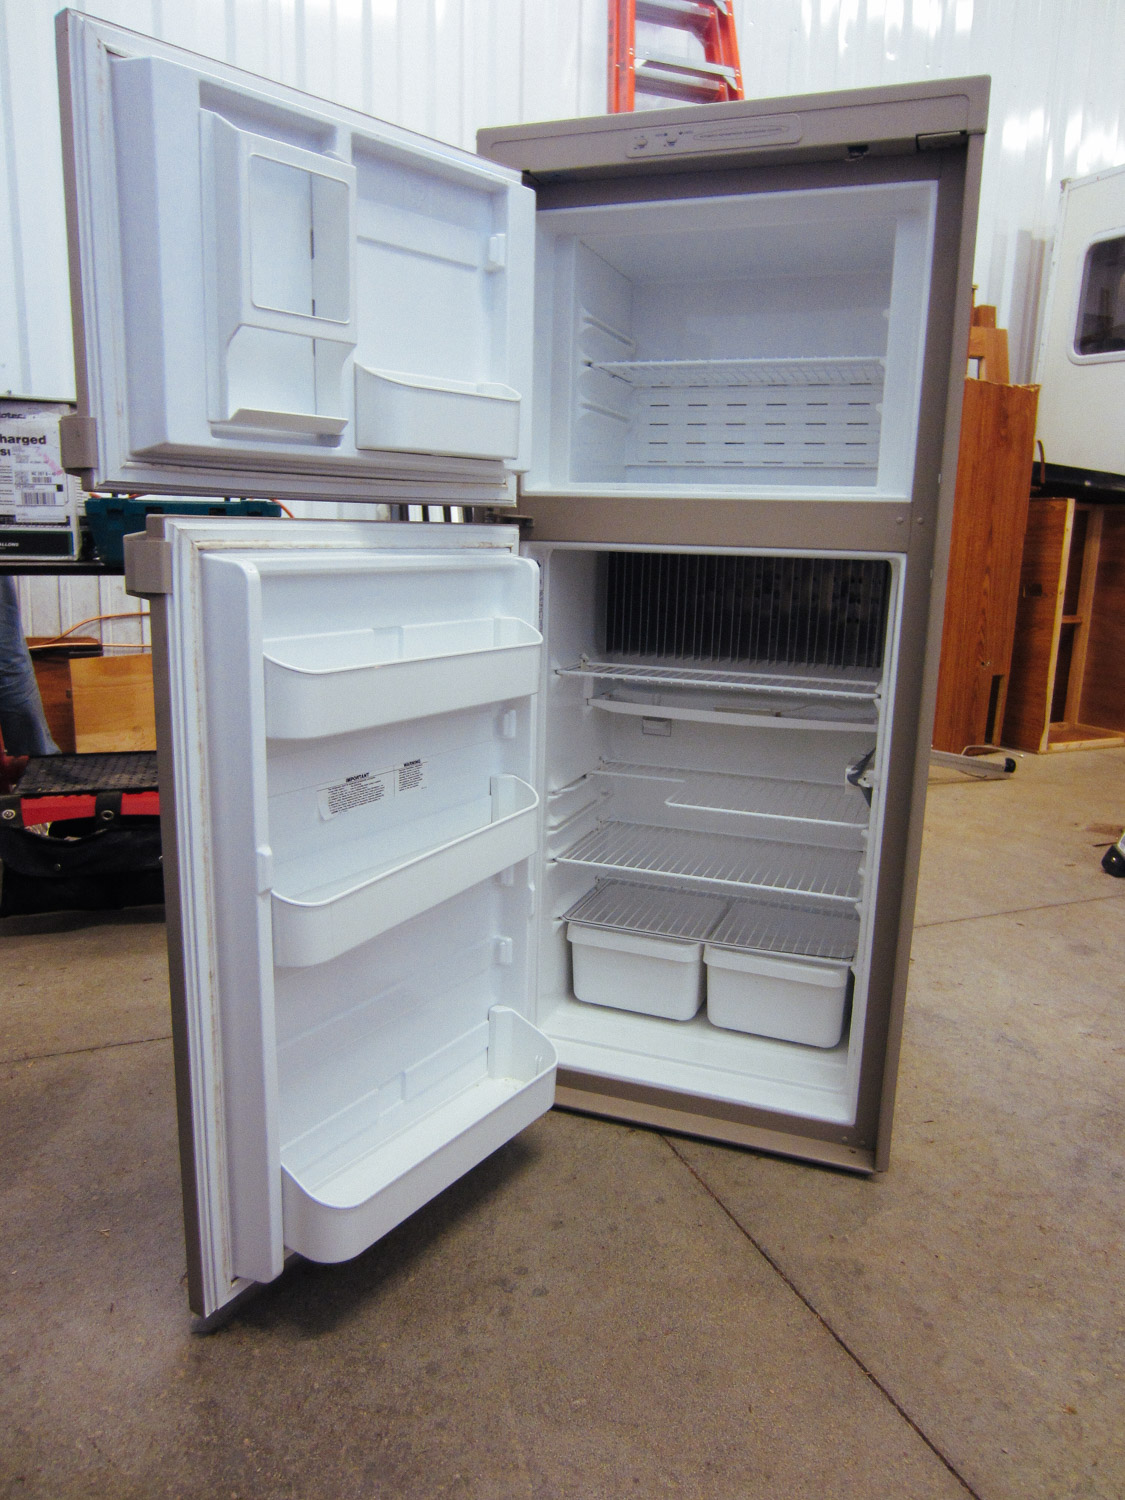 We were able to sell the majority of the original appliances we removed from the rig: fridge, furnace, toilet, awning hardware, black tank, etc.